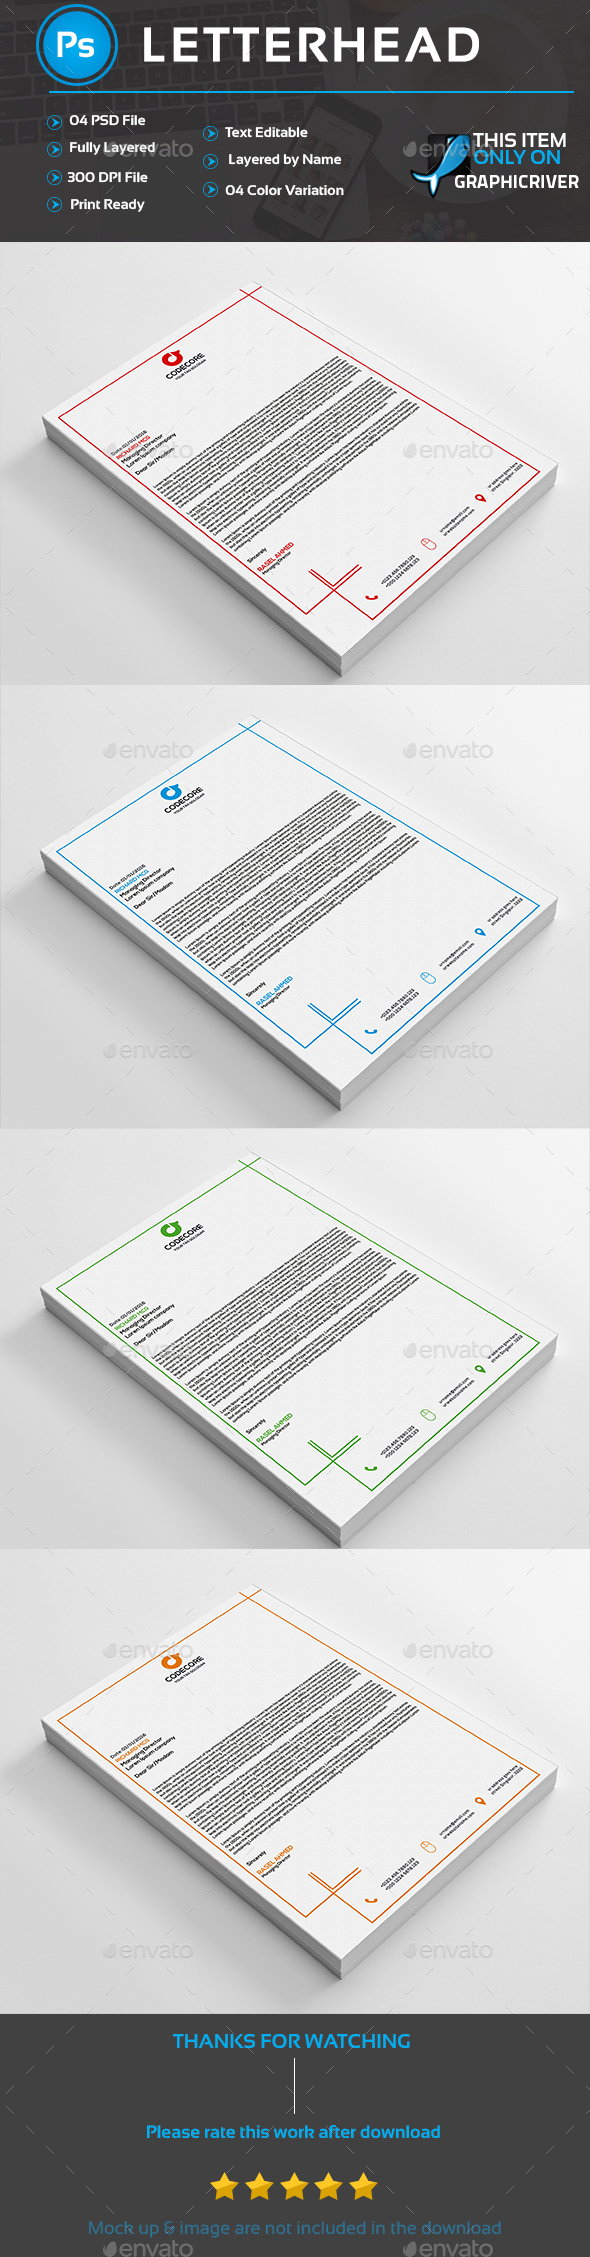 Letterhead Template (Stationery)